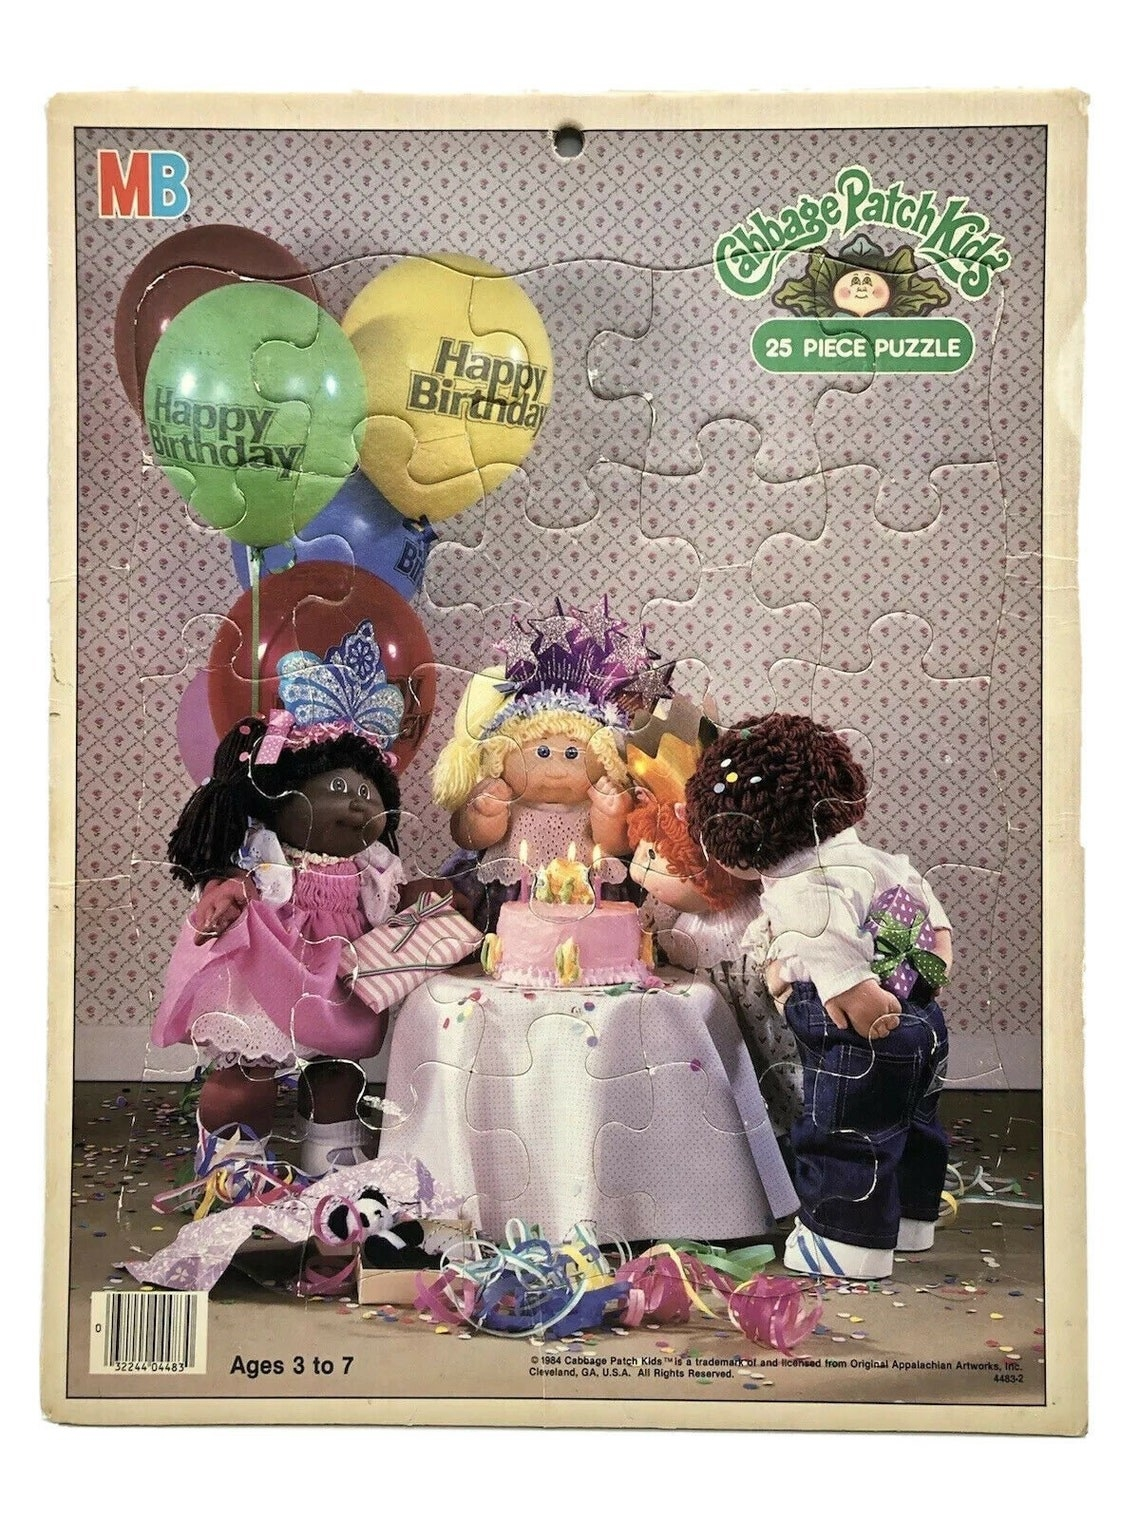 A puzzle of Cabbage Patch Kids dolls blowing candles on a birthday cake